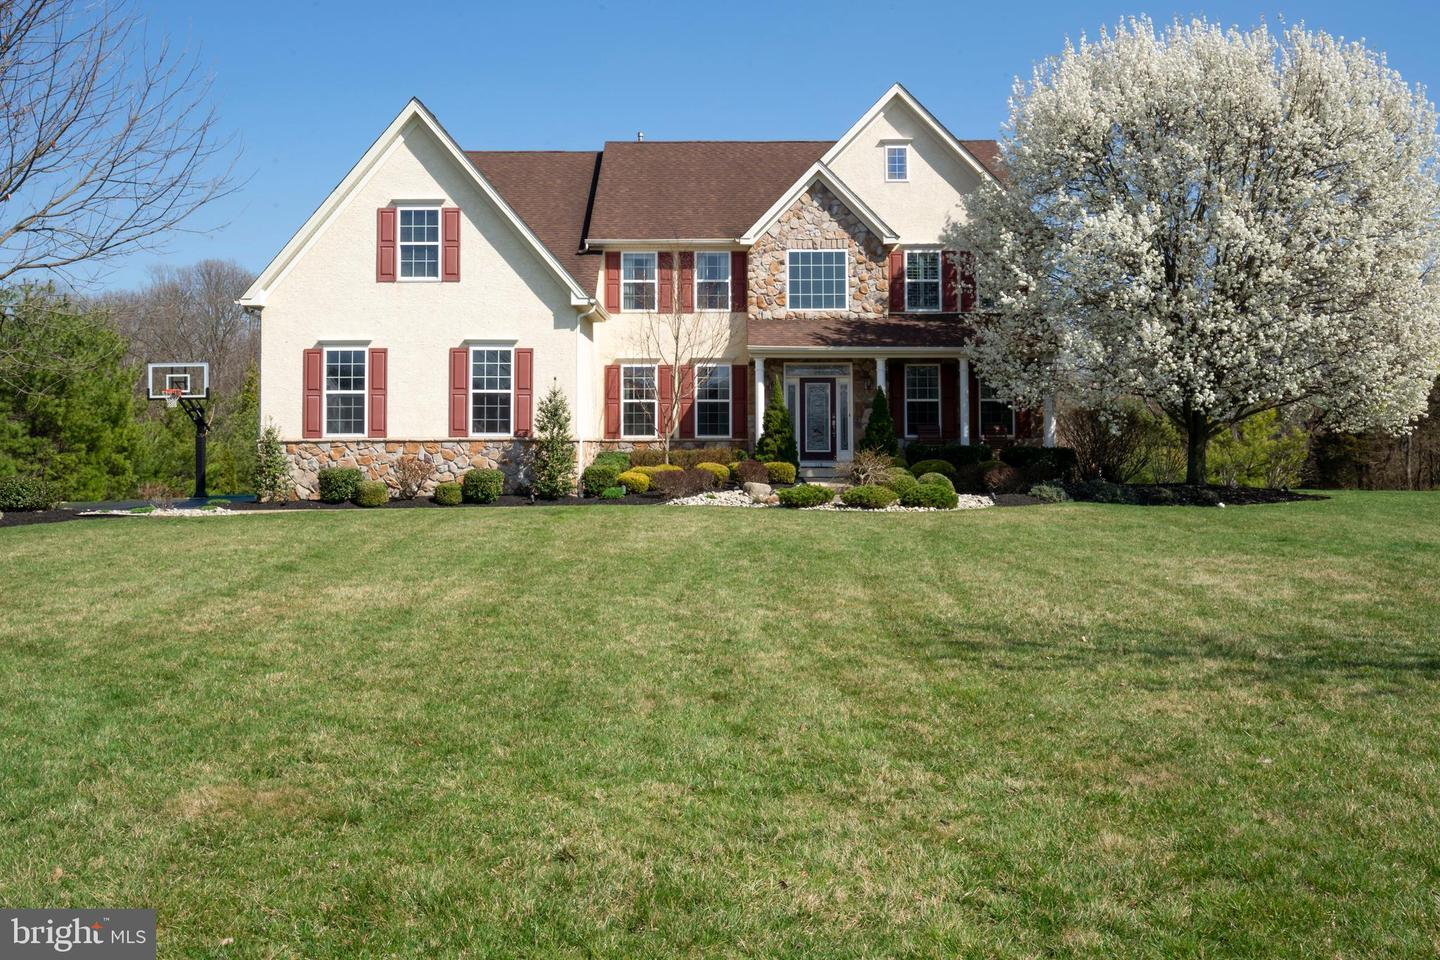 118 TAMMY LN, MICKLETON, NJ 08056